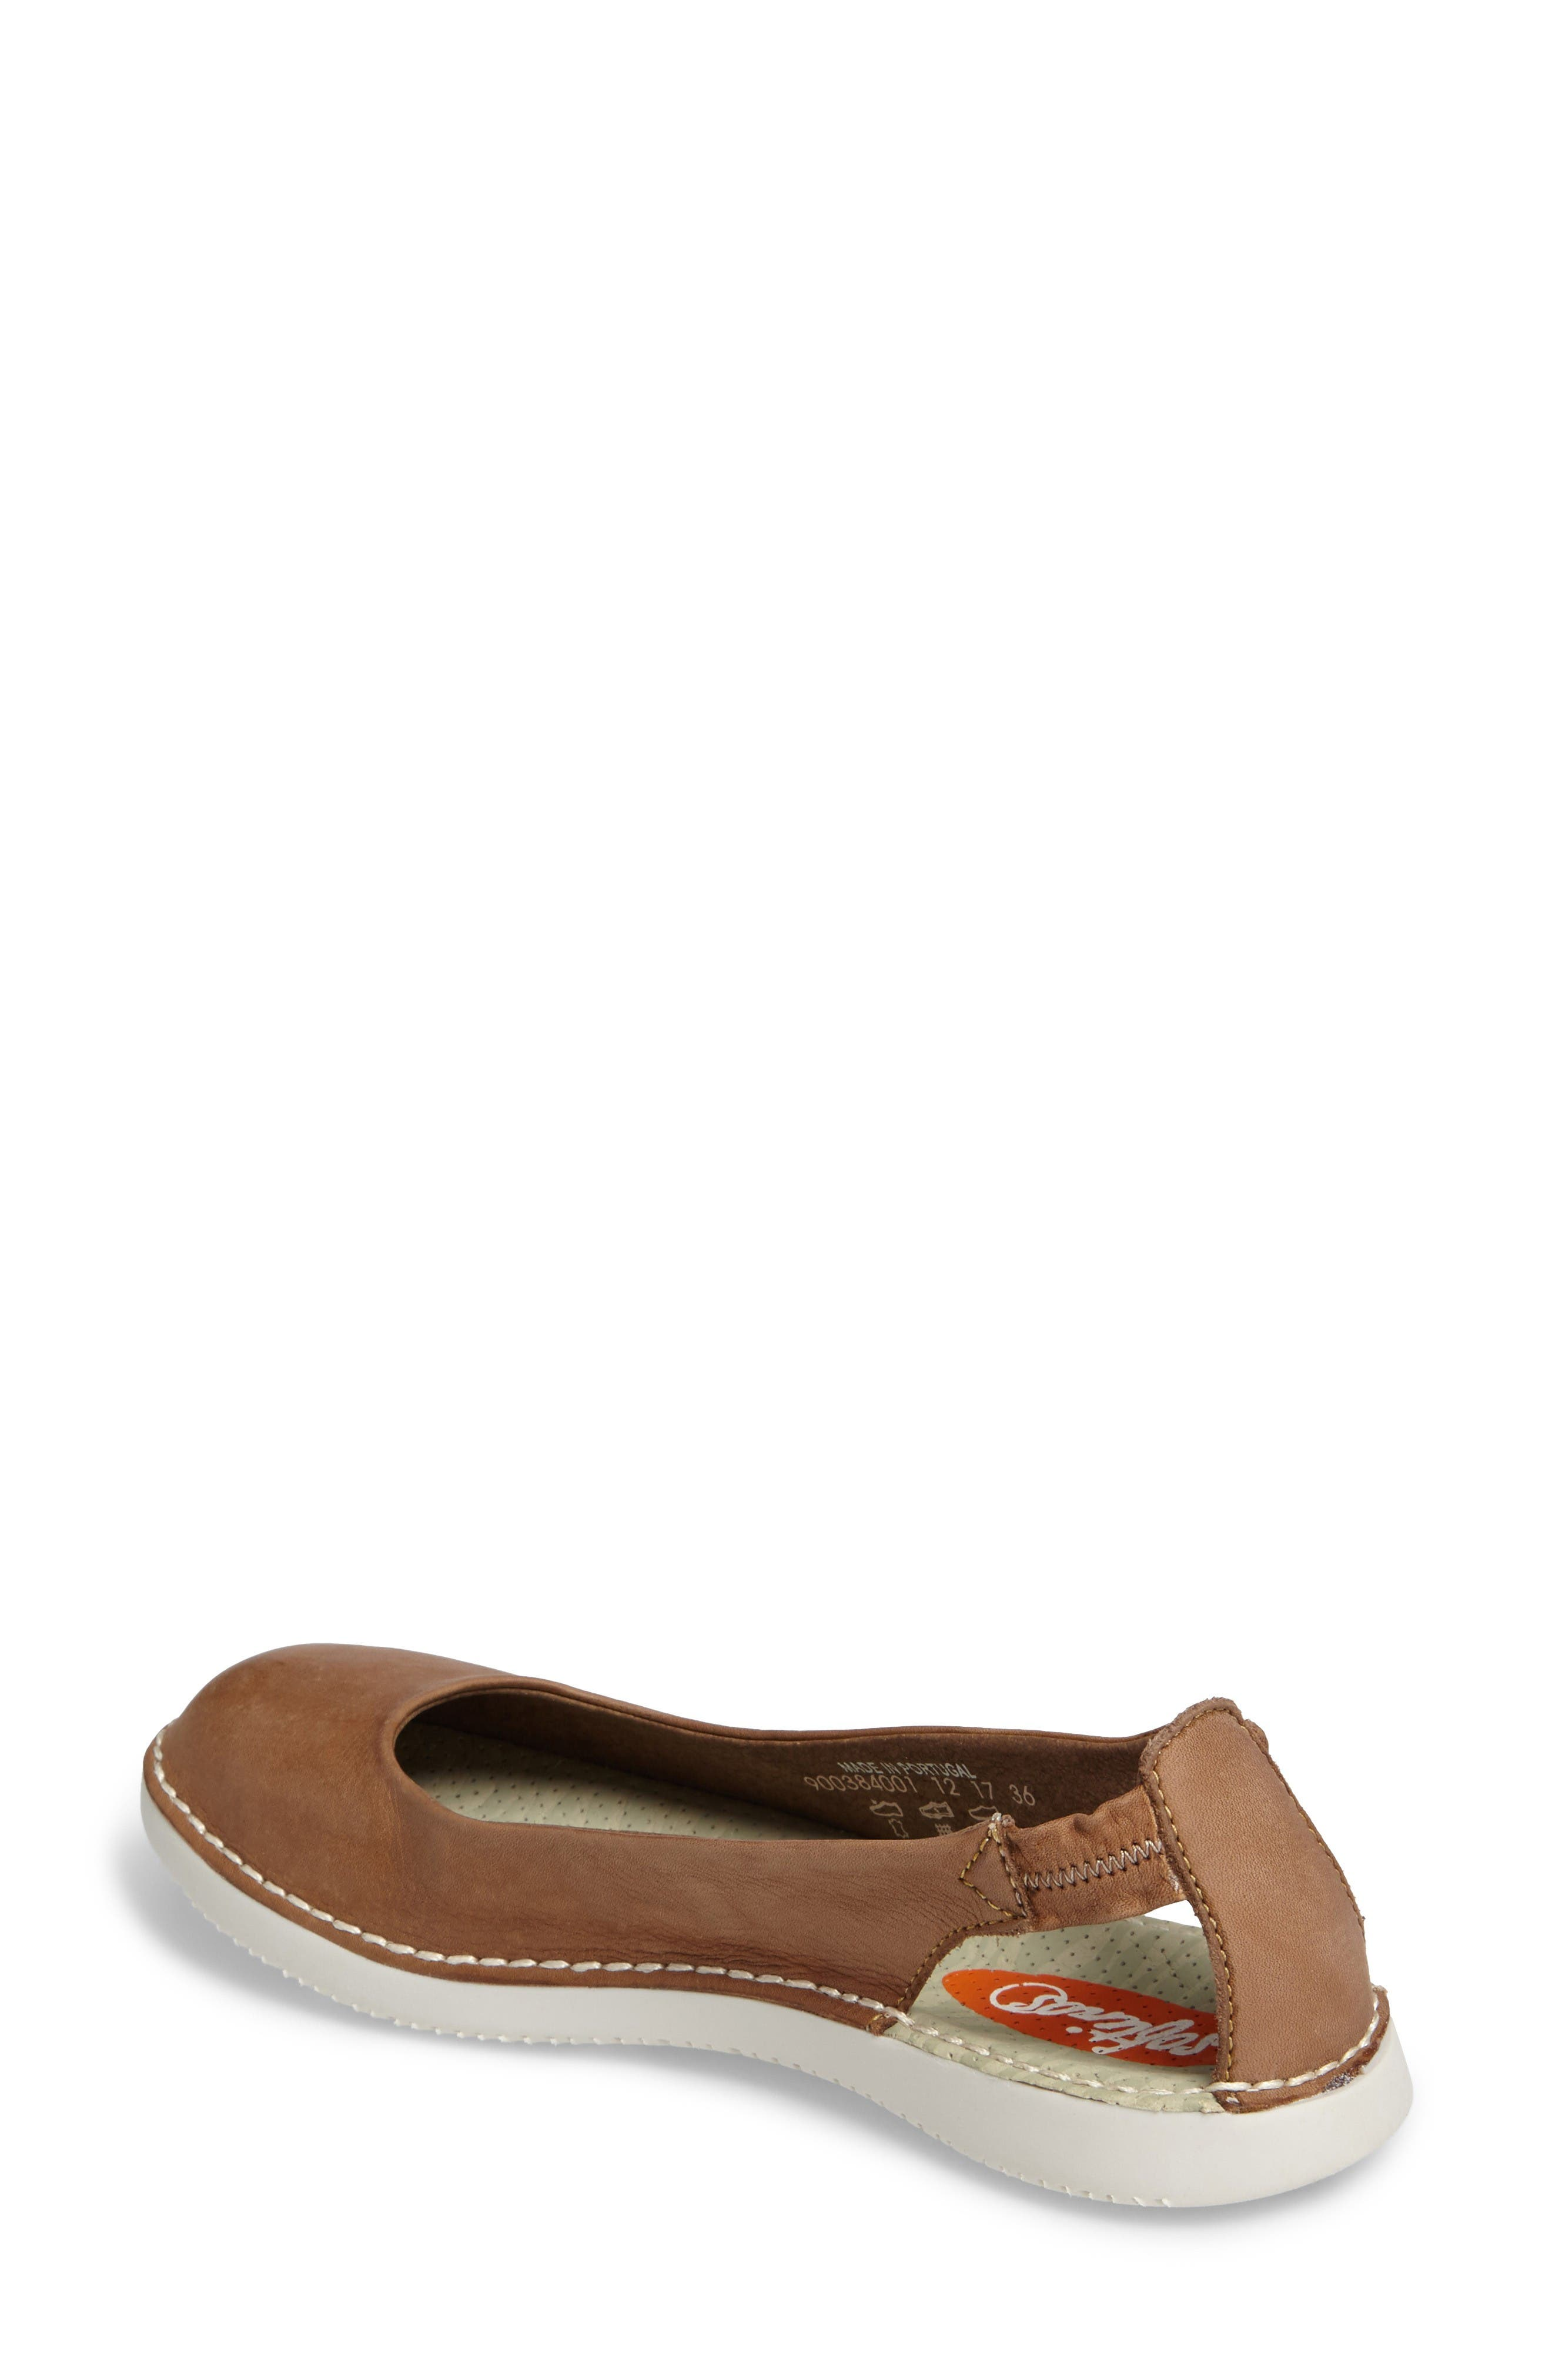 Tor Ballerina Flat,                             Alternate thumbnail 2, color,                             Brown Washed Leather